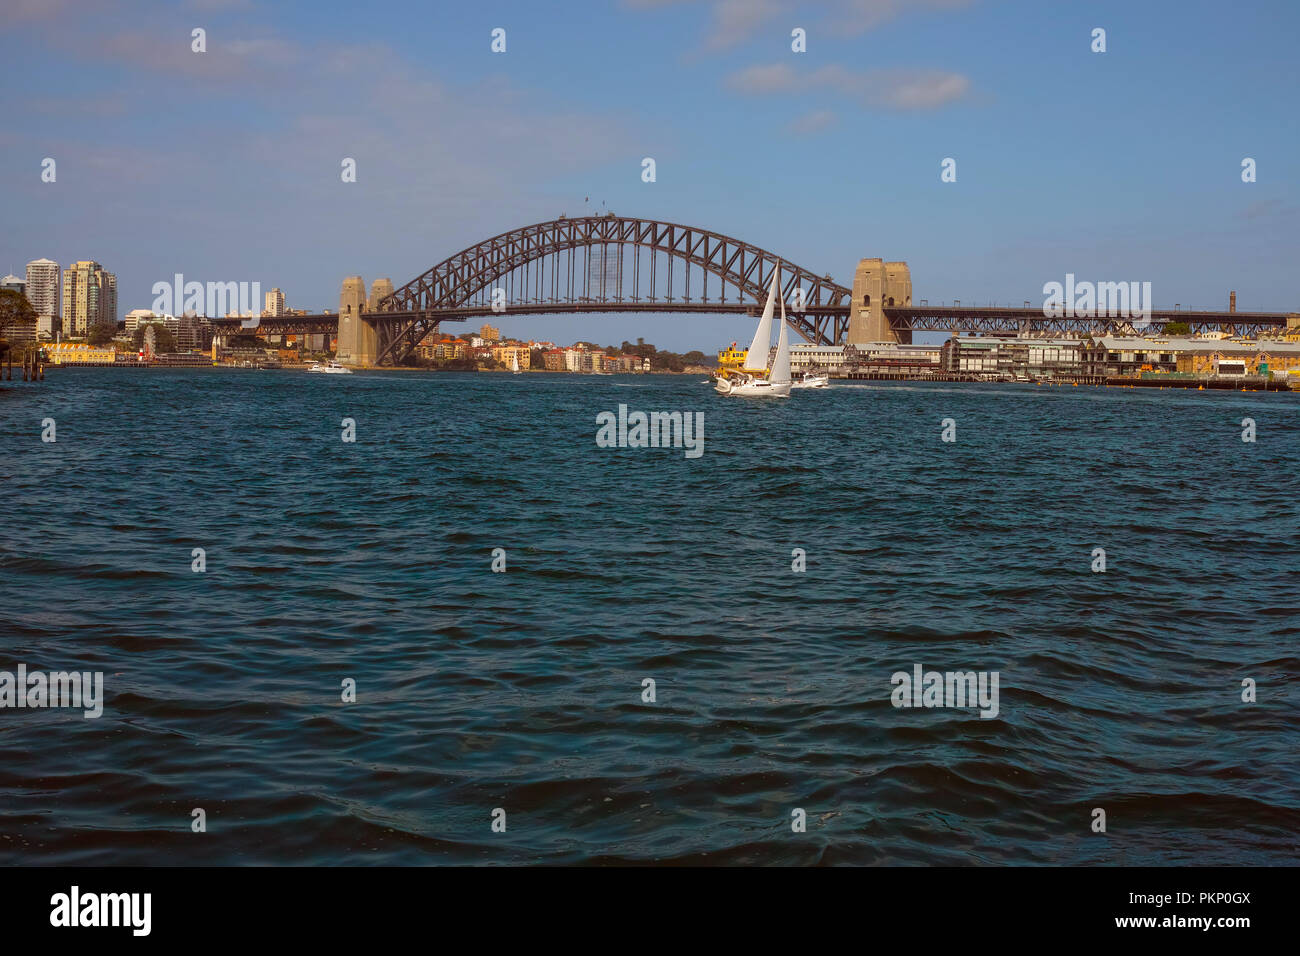 Aerial view of skyscrapers and Sydney Cove in Sydney, Australia 2012. - Stock Image